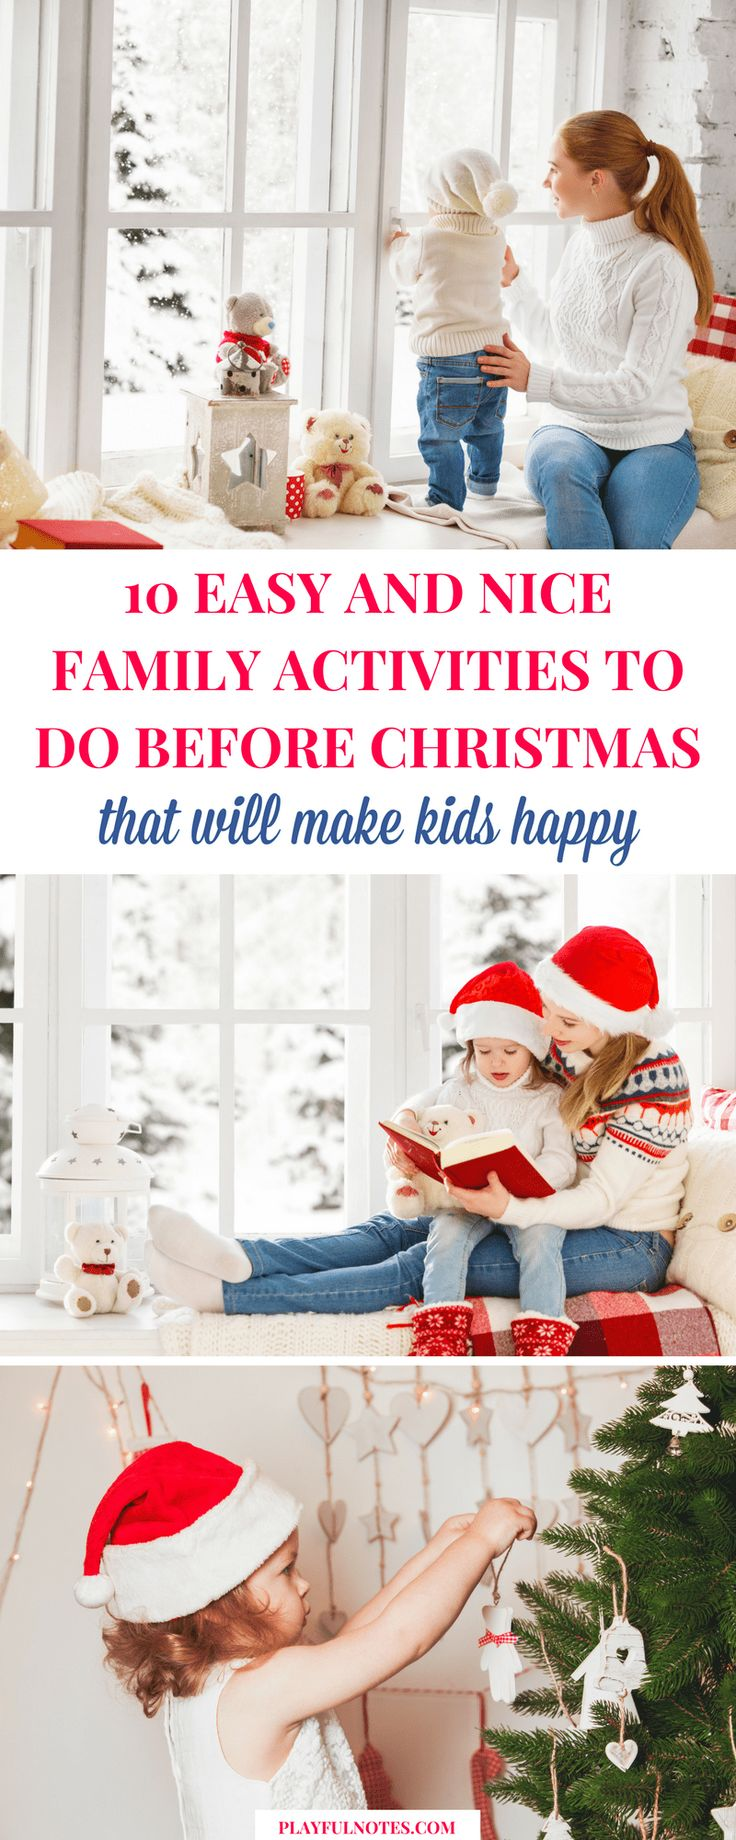 Christmas family activities: If you want to create lovely moments to enjoy with your family during the holiday season, here is a list of easy and nice ideas you can try with your kids! | Christmas - Things to do for kids | Meaningful Christmas Time #ChristmasForKids